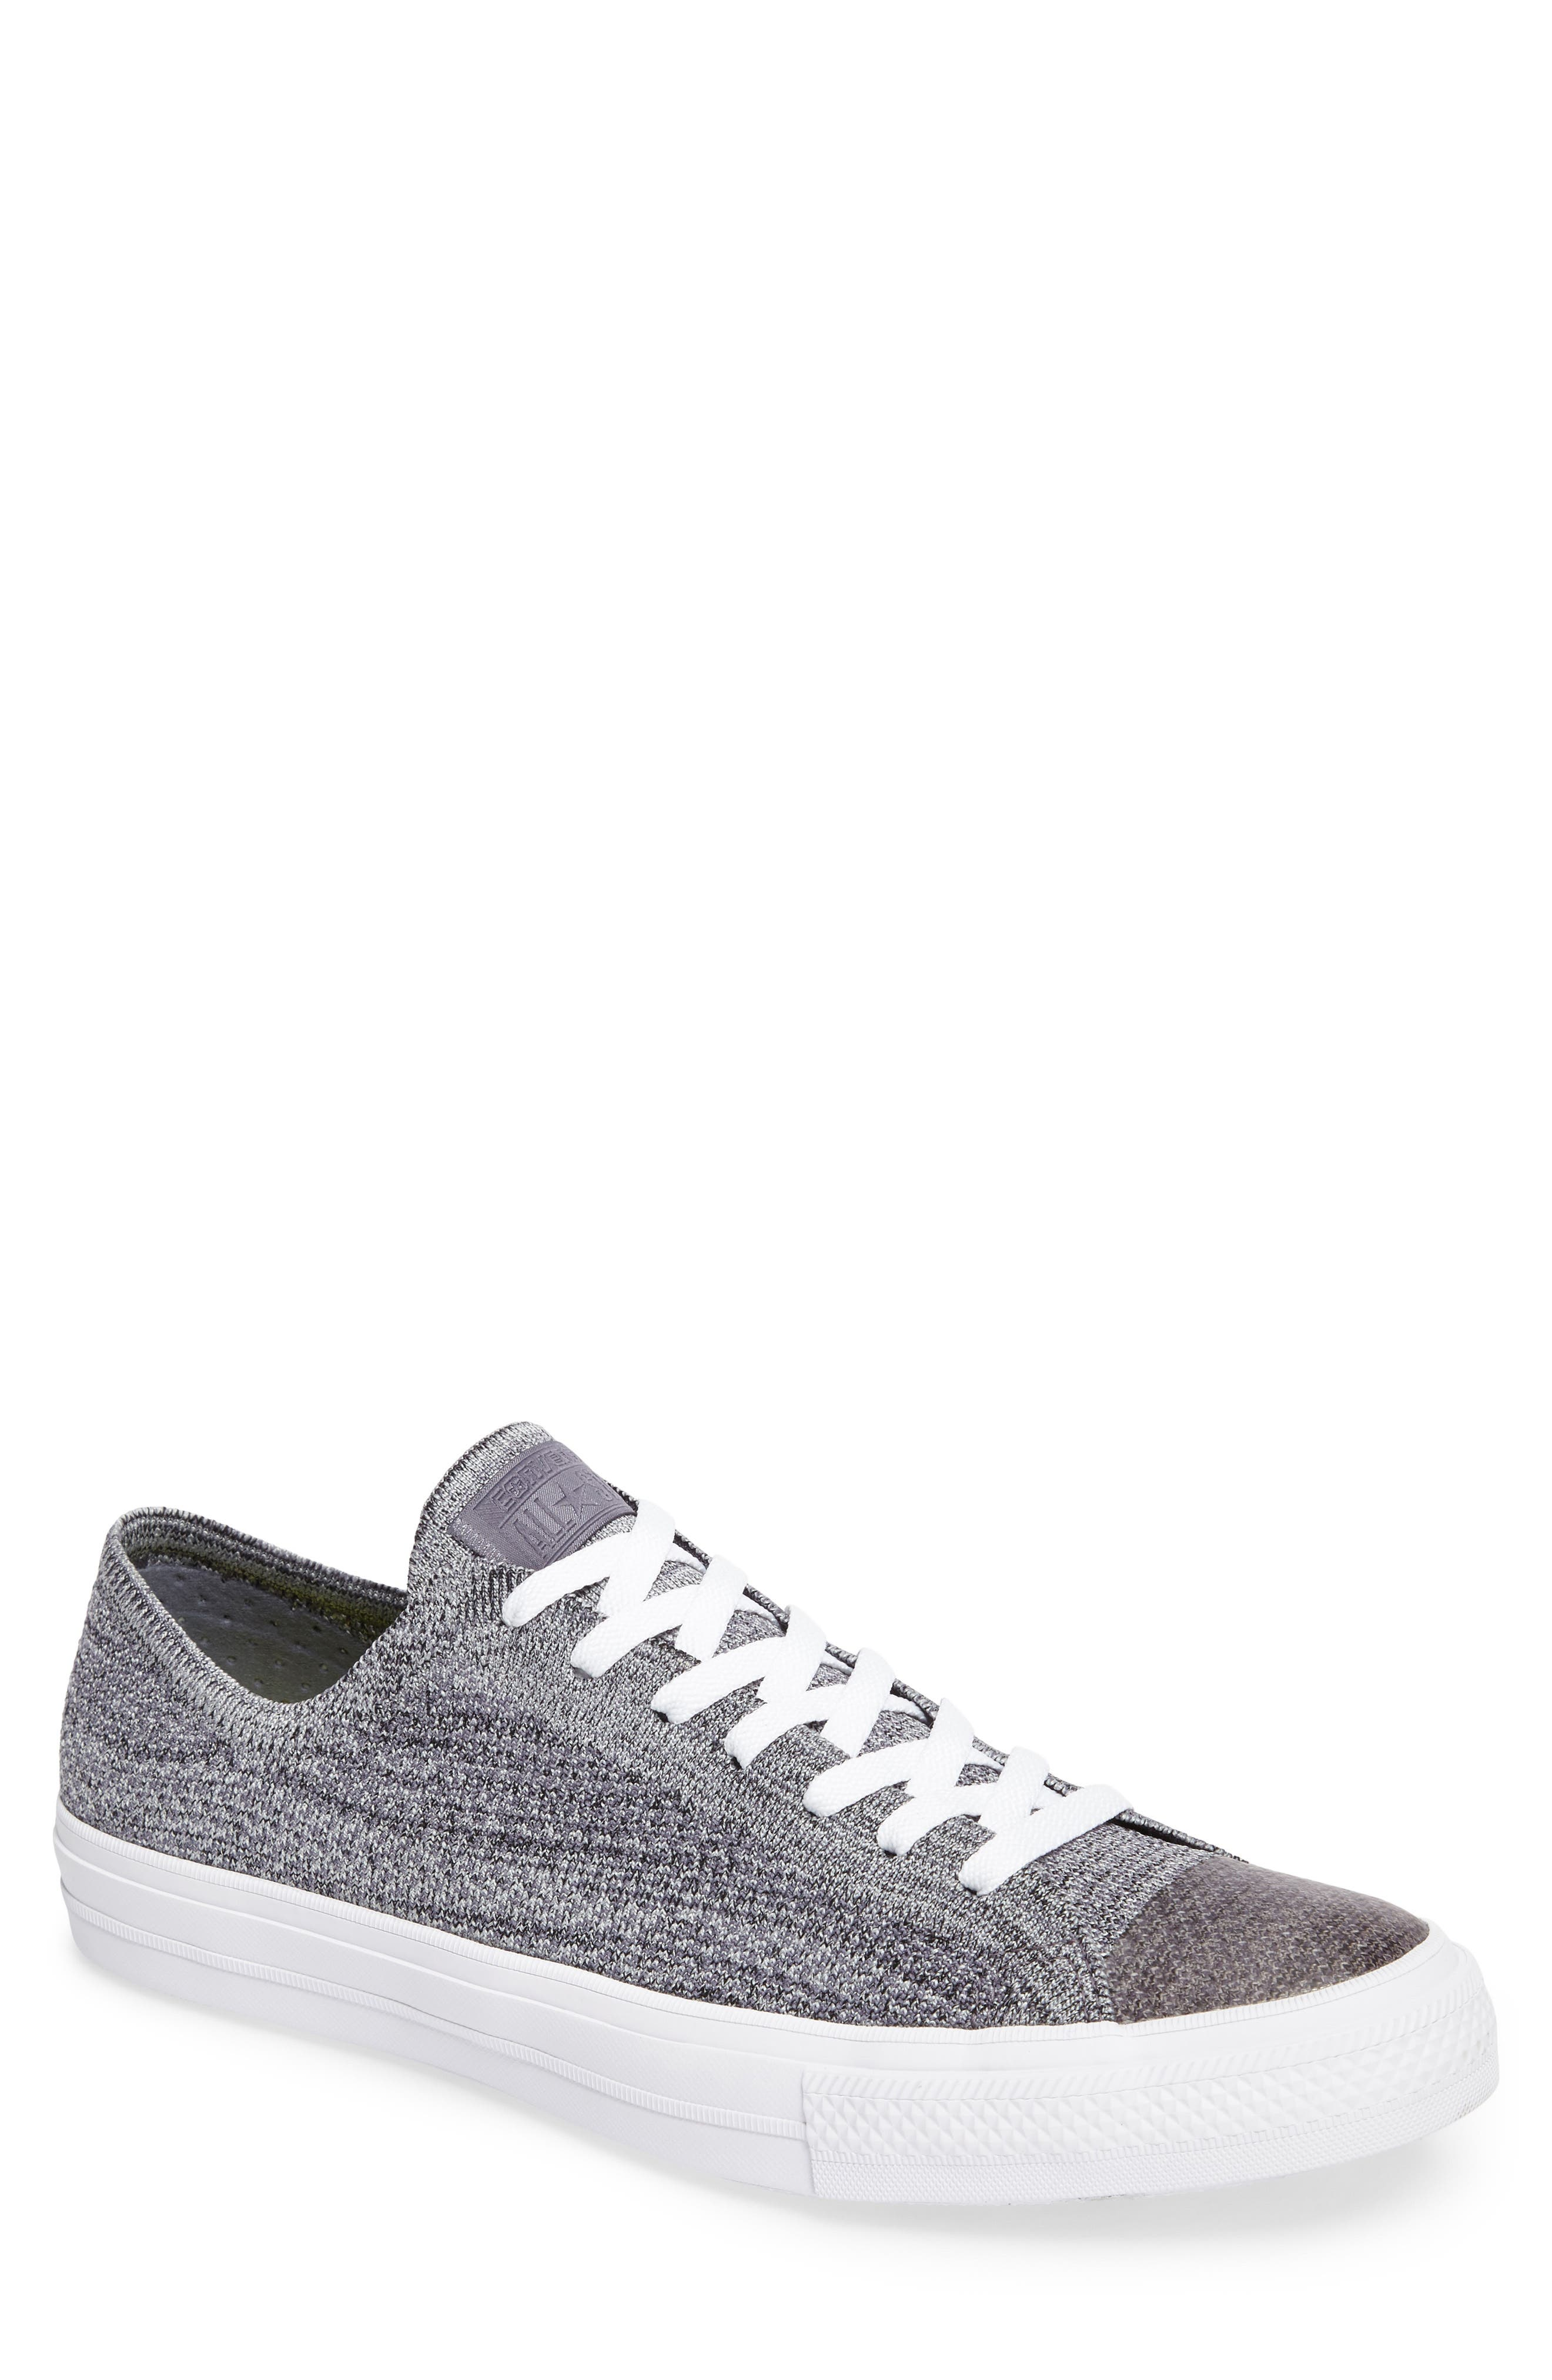 Chuck Taylor<sup>®</sup> All Star<sup>®</sup> Flyknit Sneaker,                         Main,                         color, 027